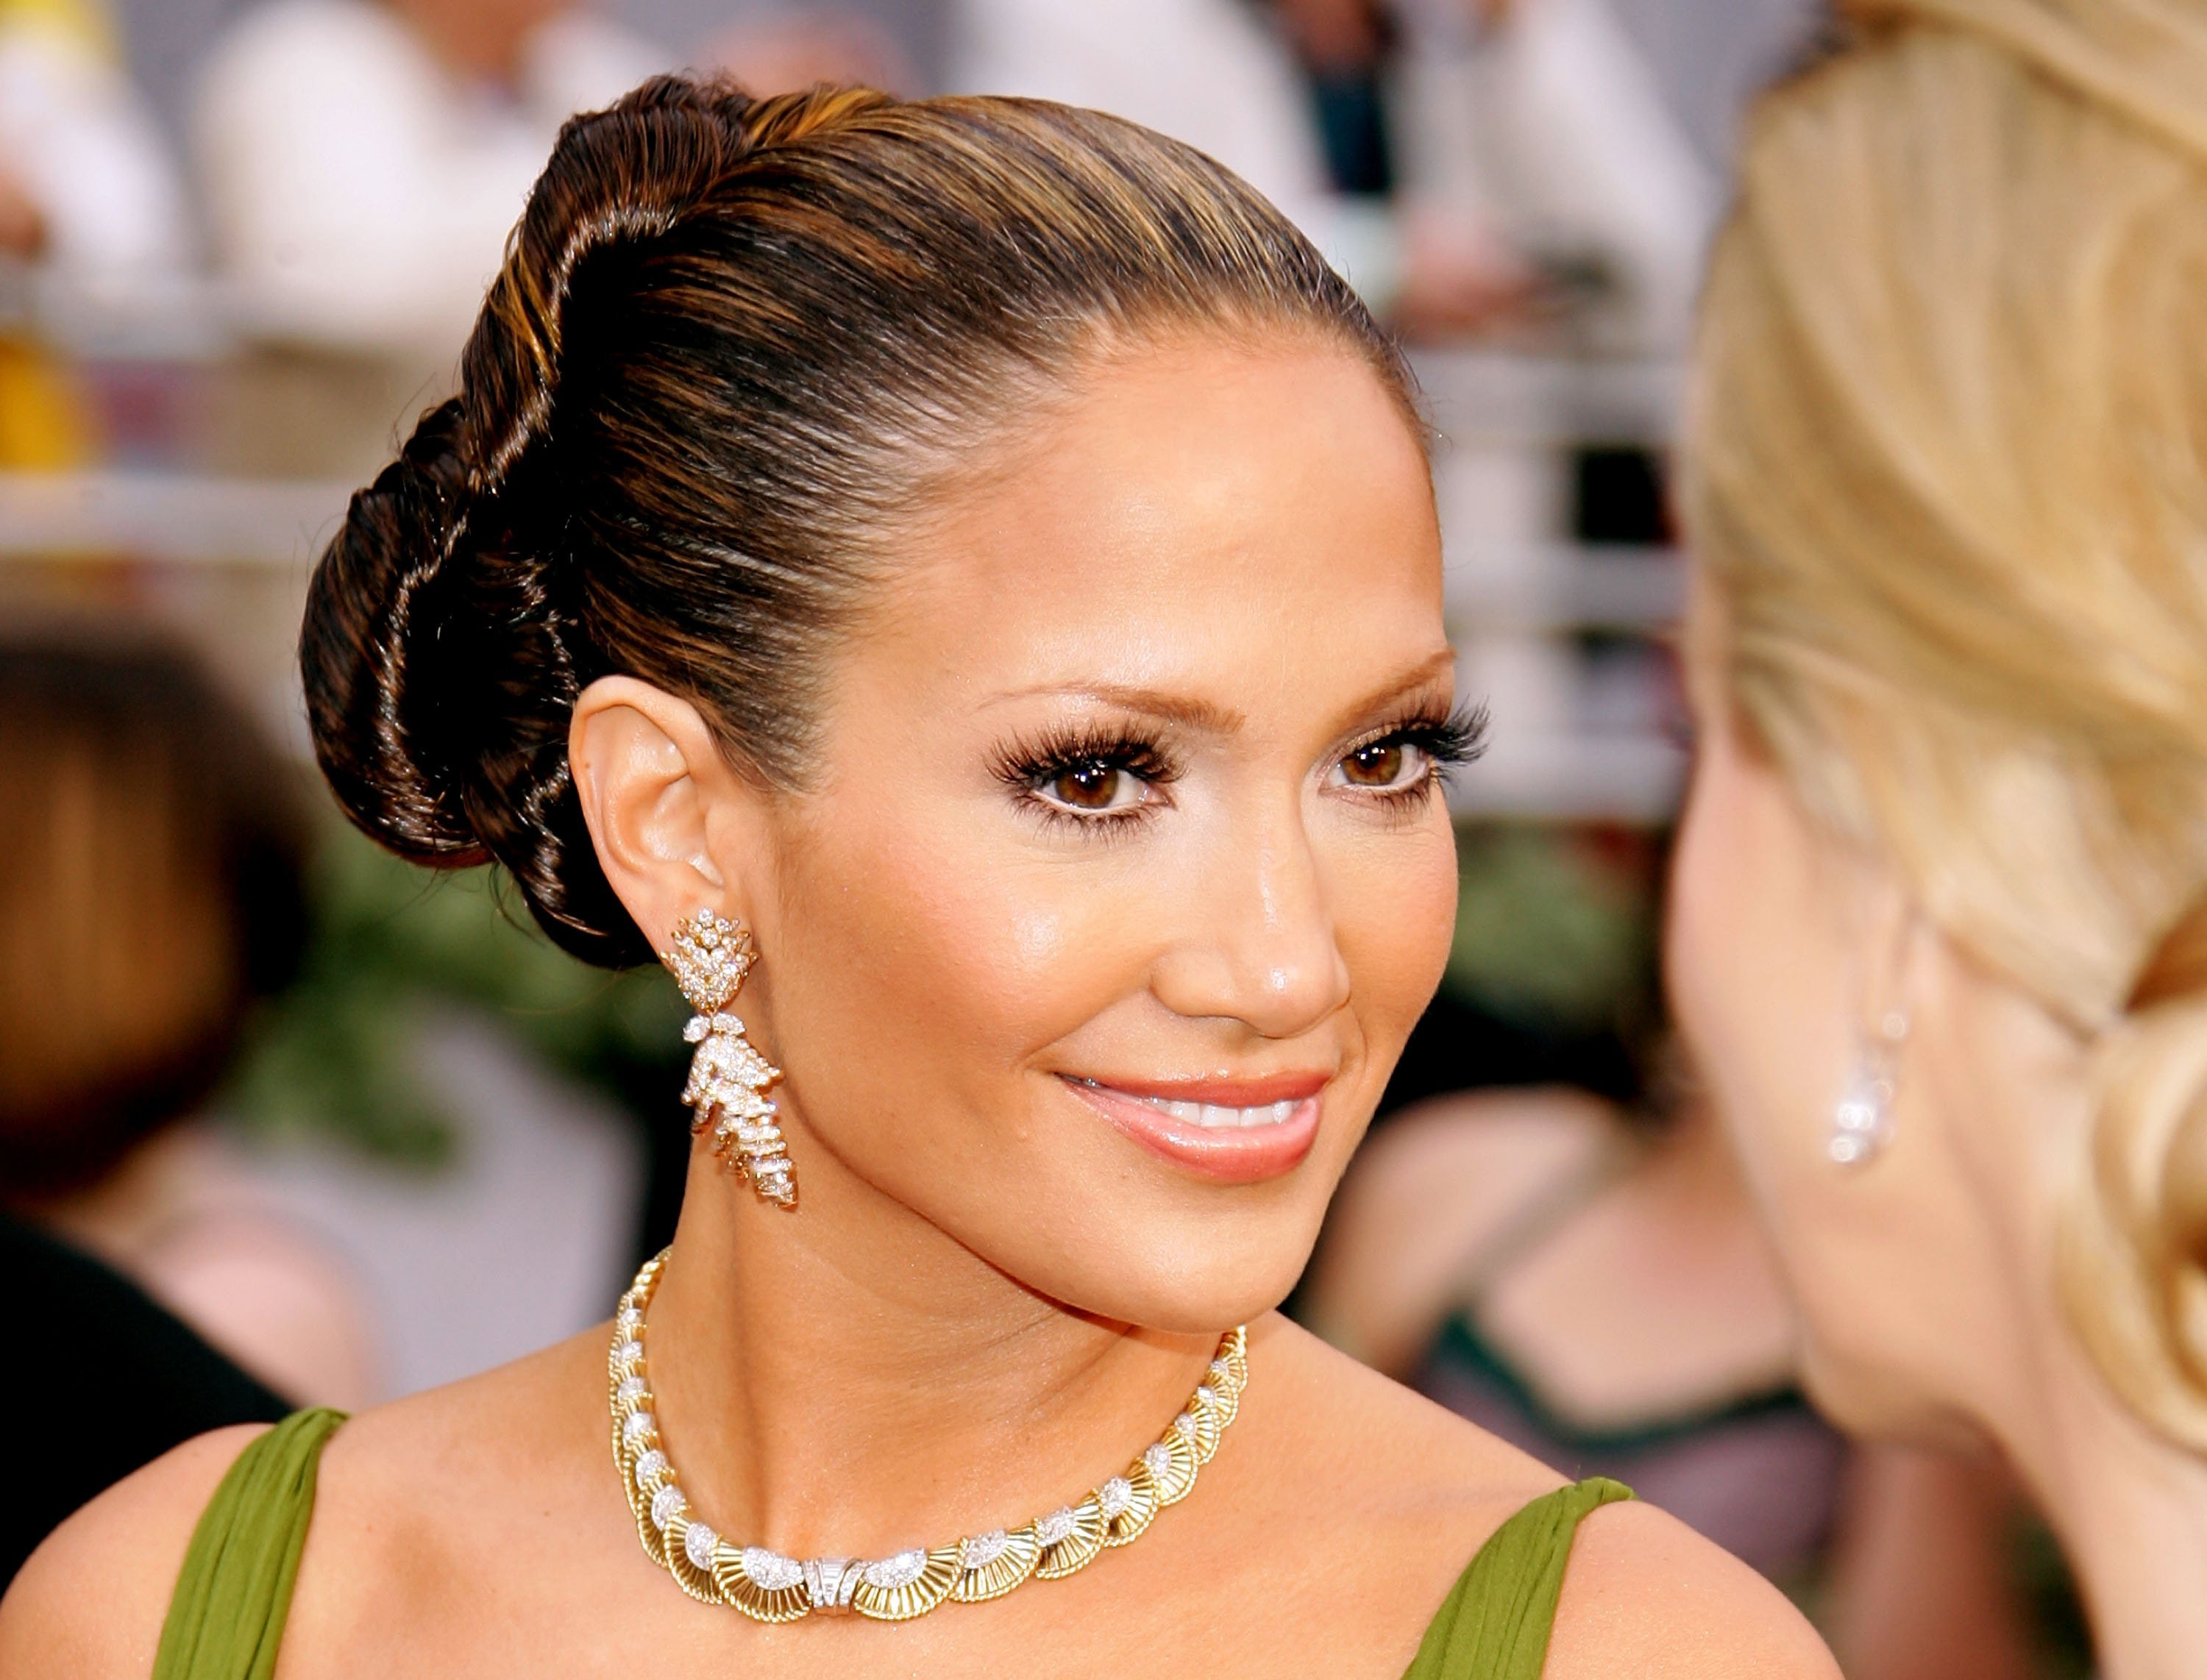 Singer and actress Jennifer Lopez during the 2006 Annual Academy Awards in California. | Photo: Getty Images